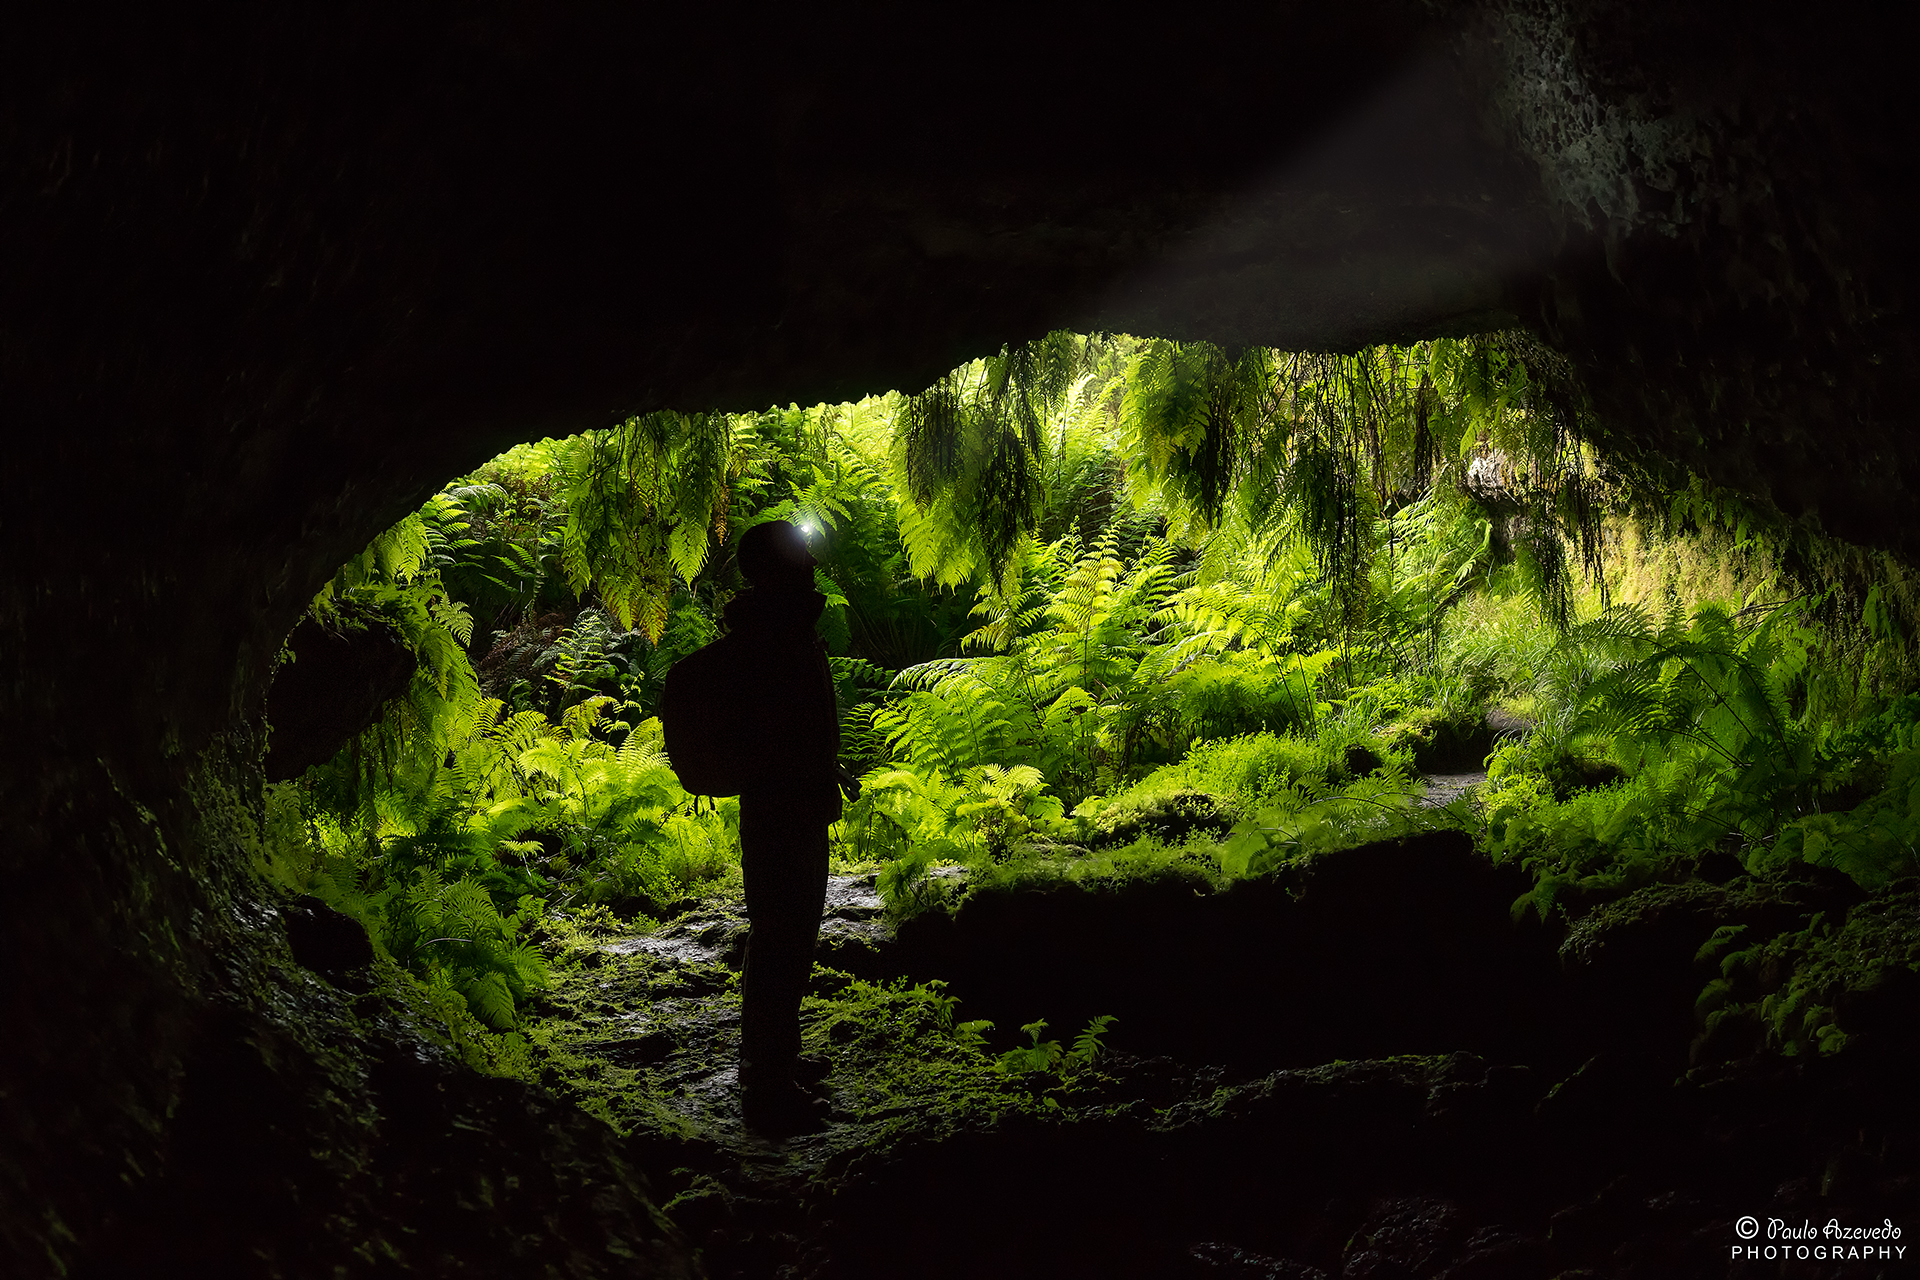 The entrance to the gnome world, Portugal